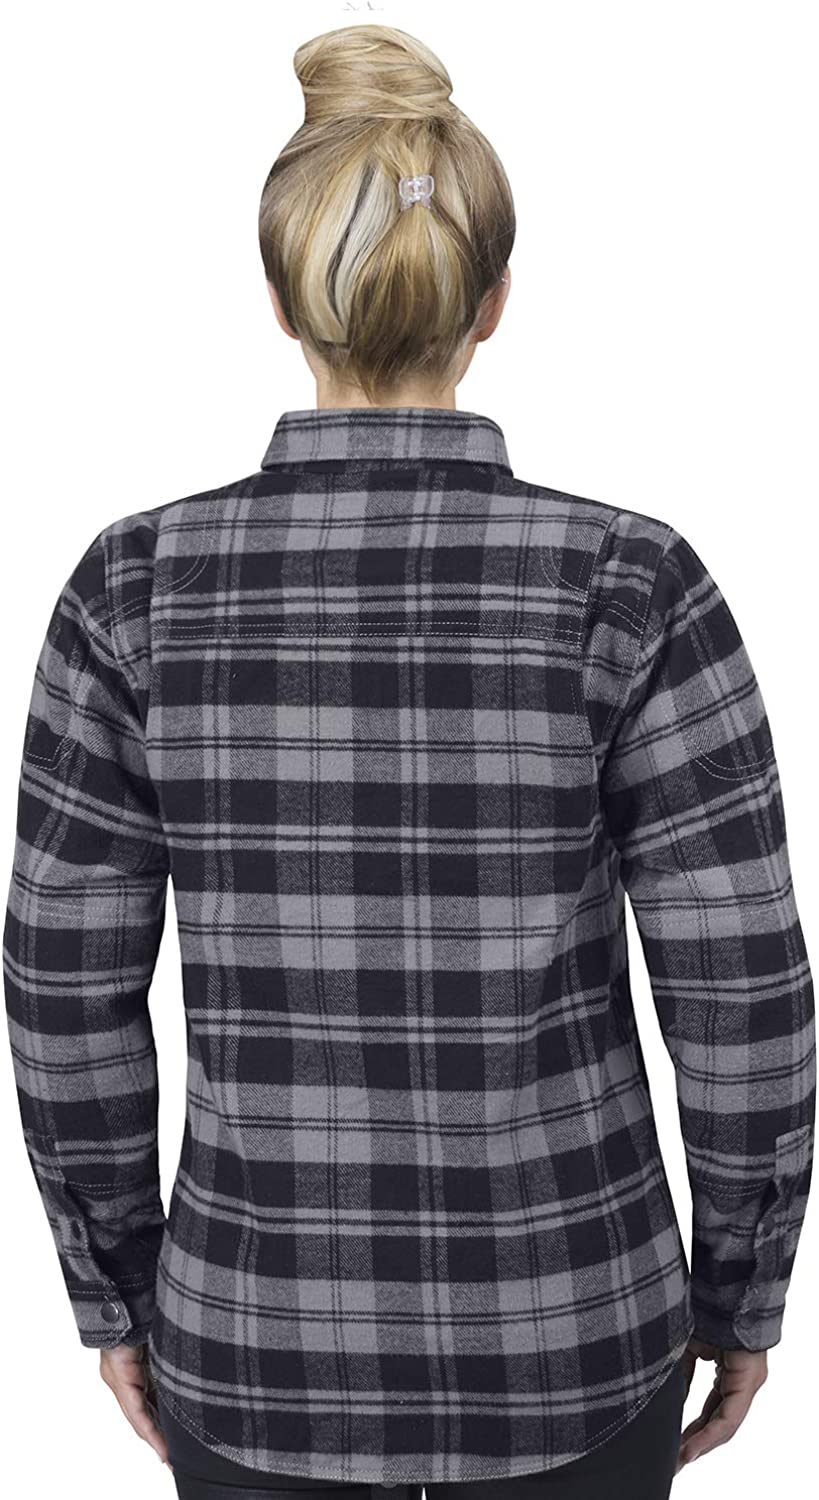 Viking Cycle Motorcycle CE Armor Protection Flannel Shirt for Biker Women